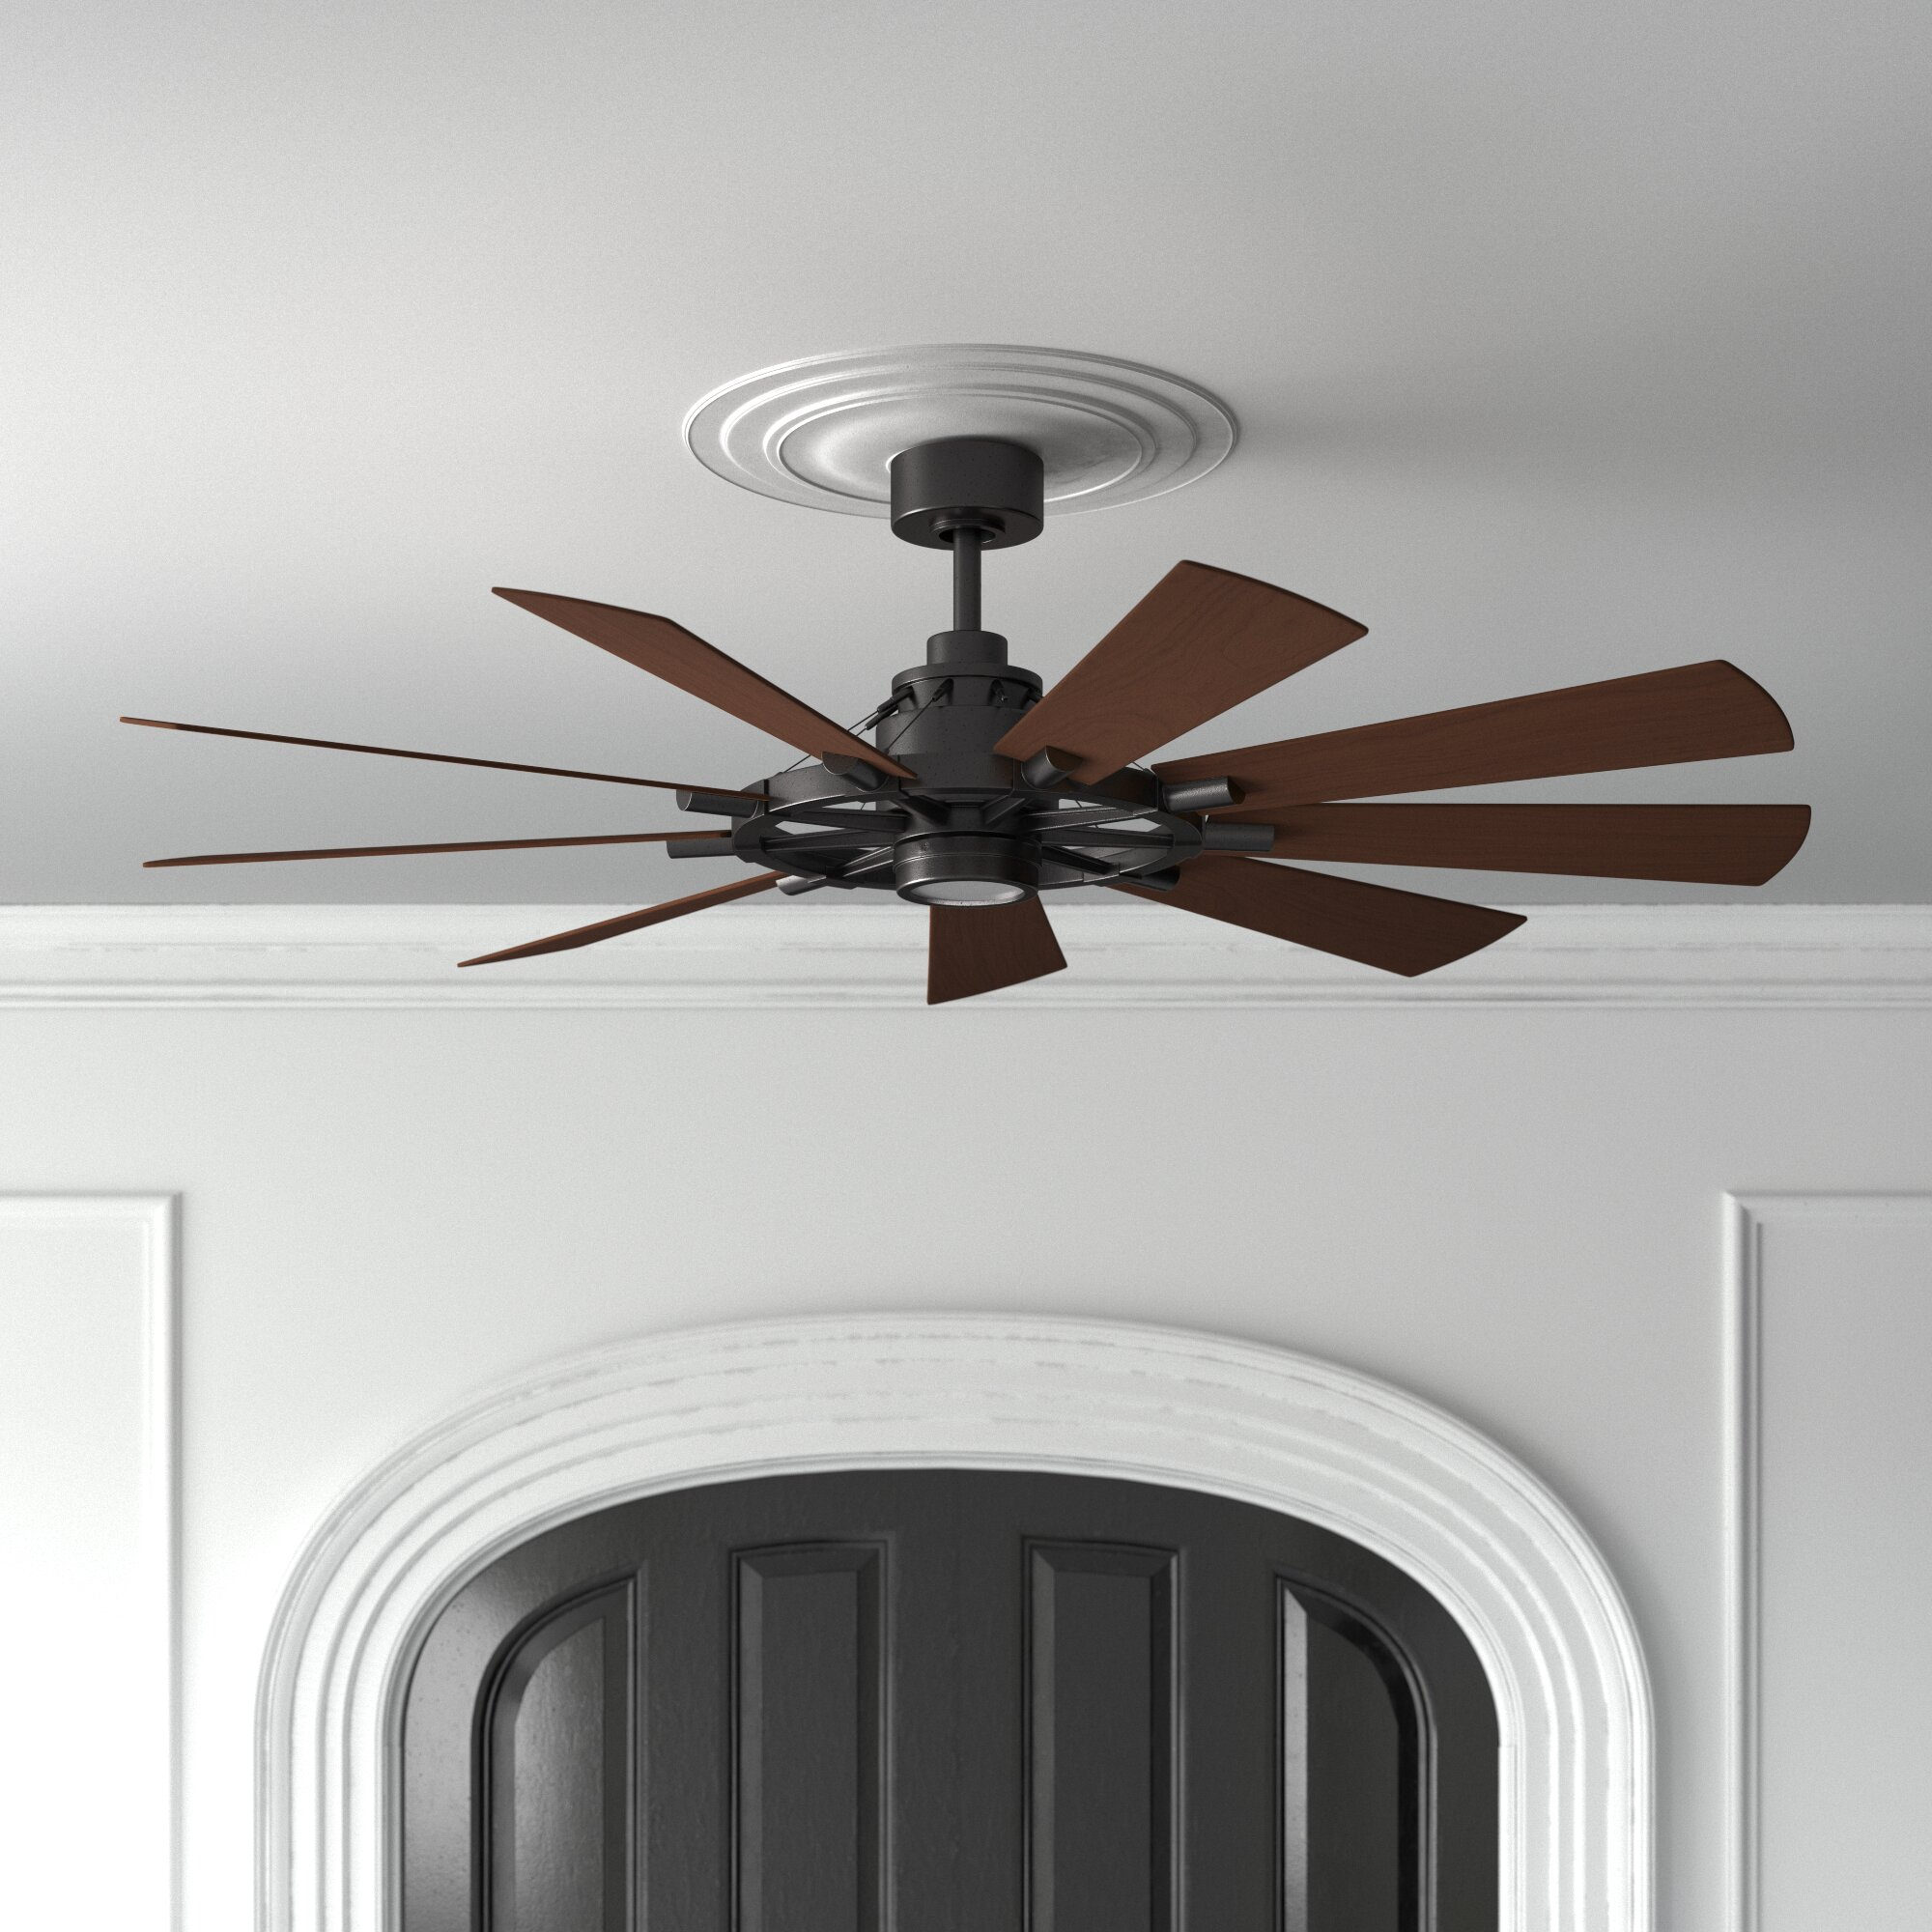 65 Socorro 9 Blade Led Windmill Ceiling Fan With Wall Control And Light Kit Included Reviews Joss Main